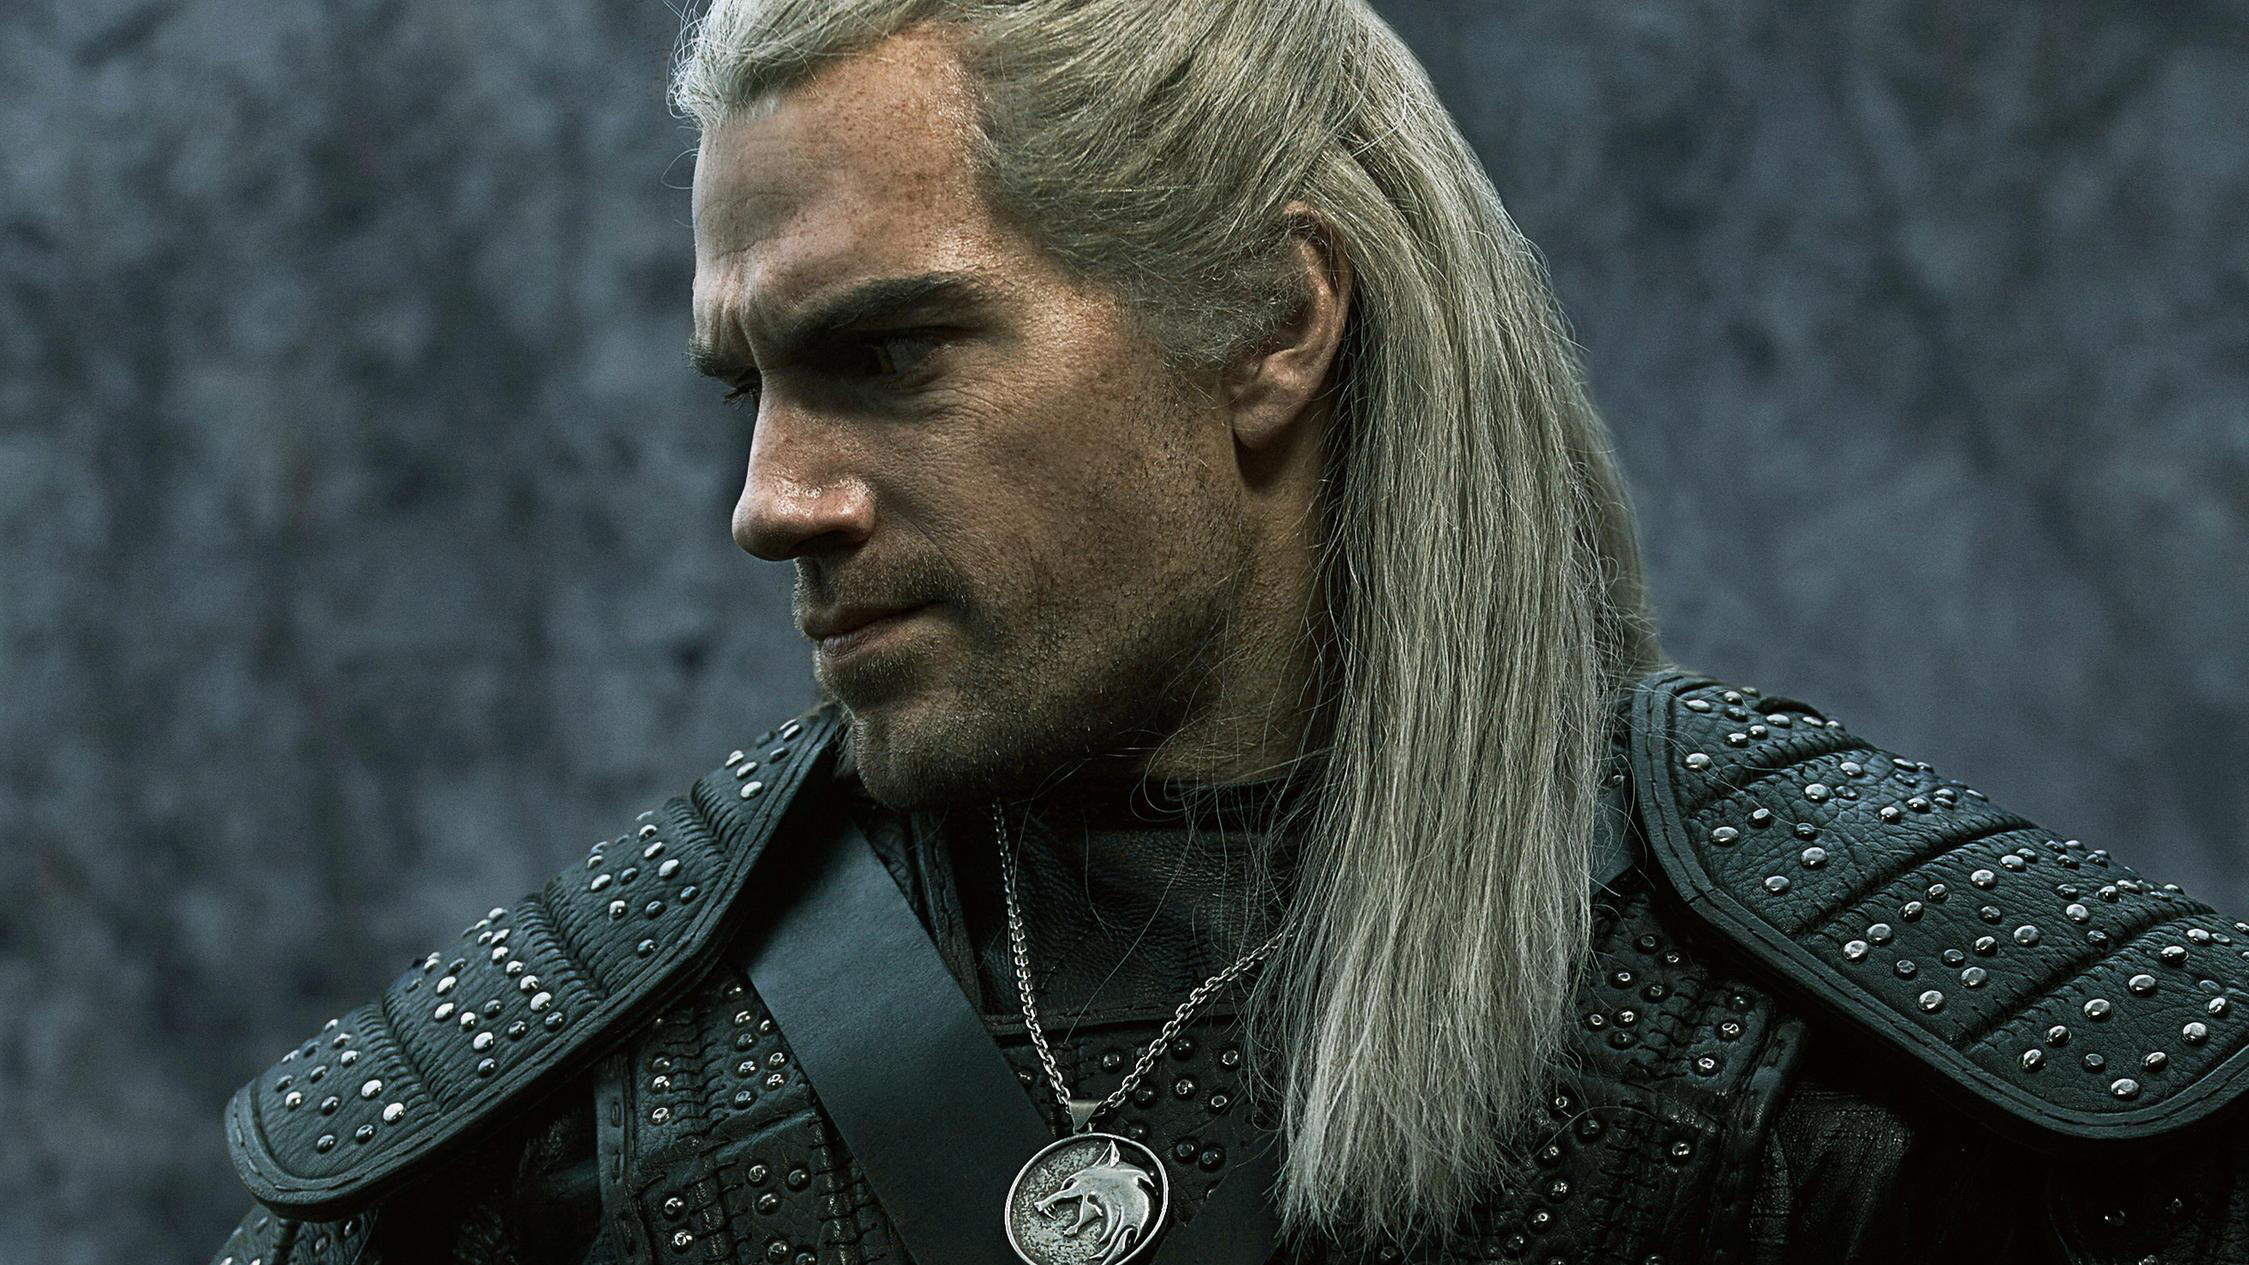 Henry Cavill Geralt The Witcher 2019 Hd Tv Shows 4k Wallpapers Images Backgrounds Photos And Pictures